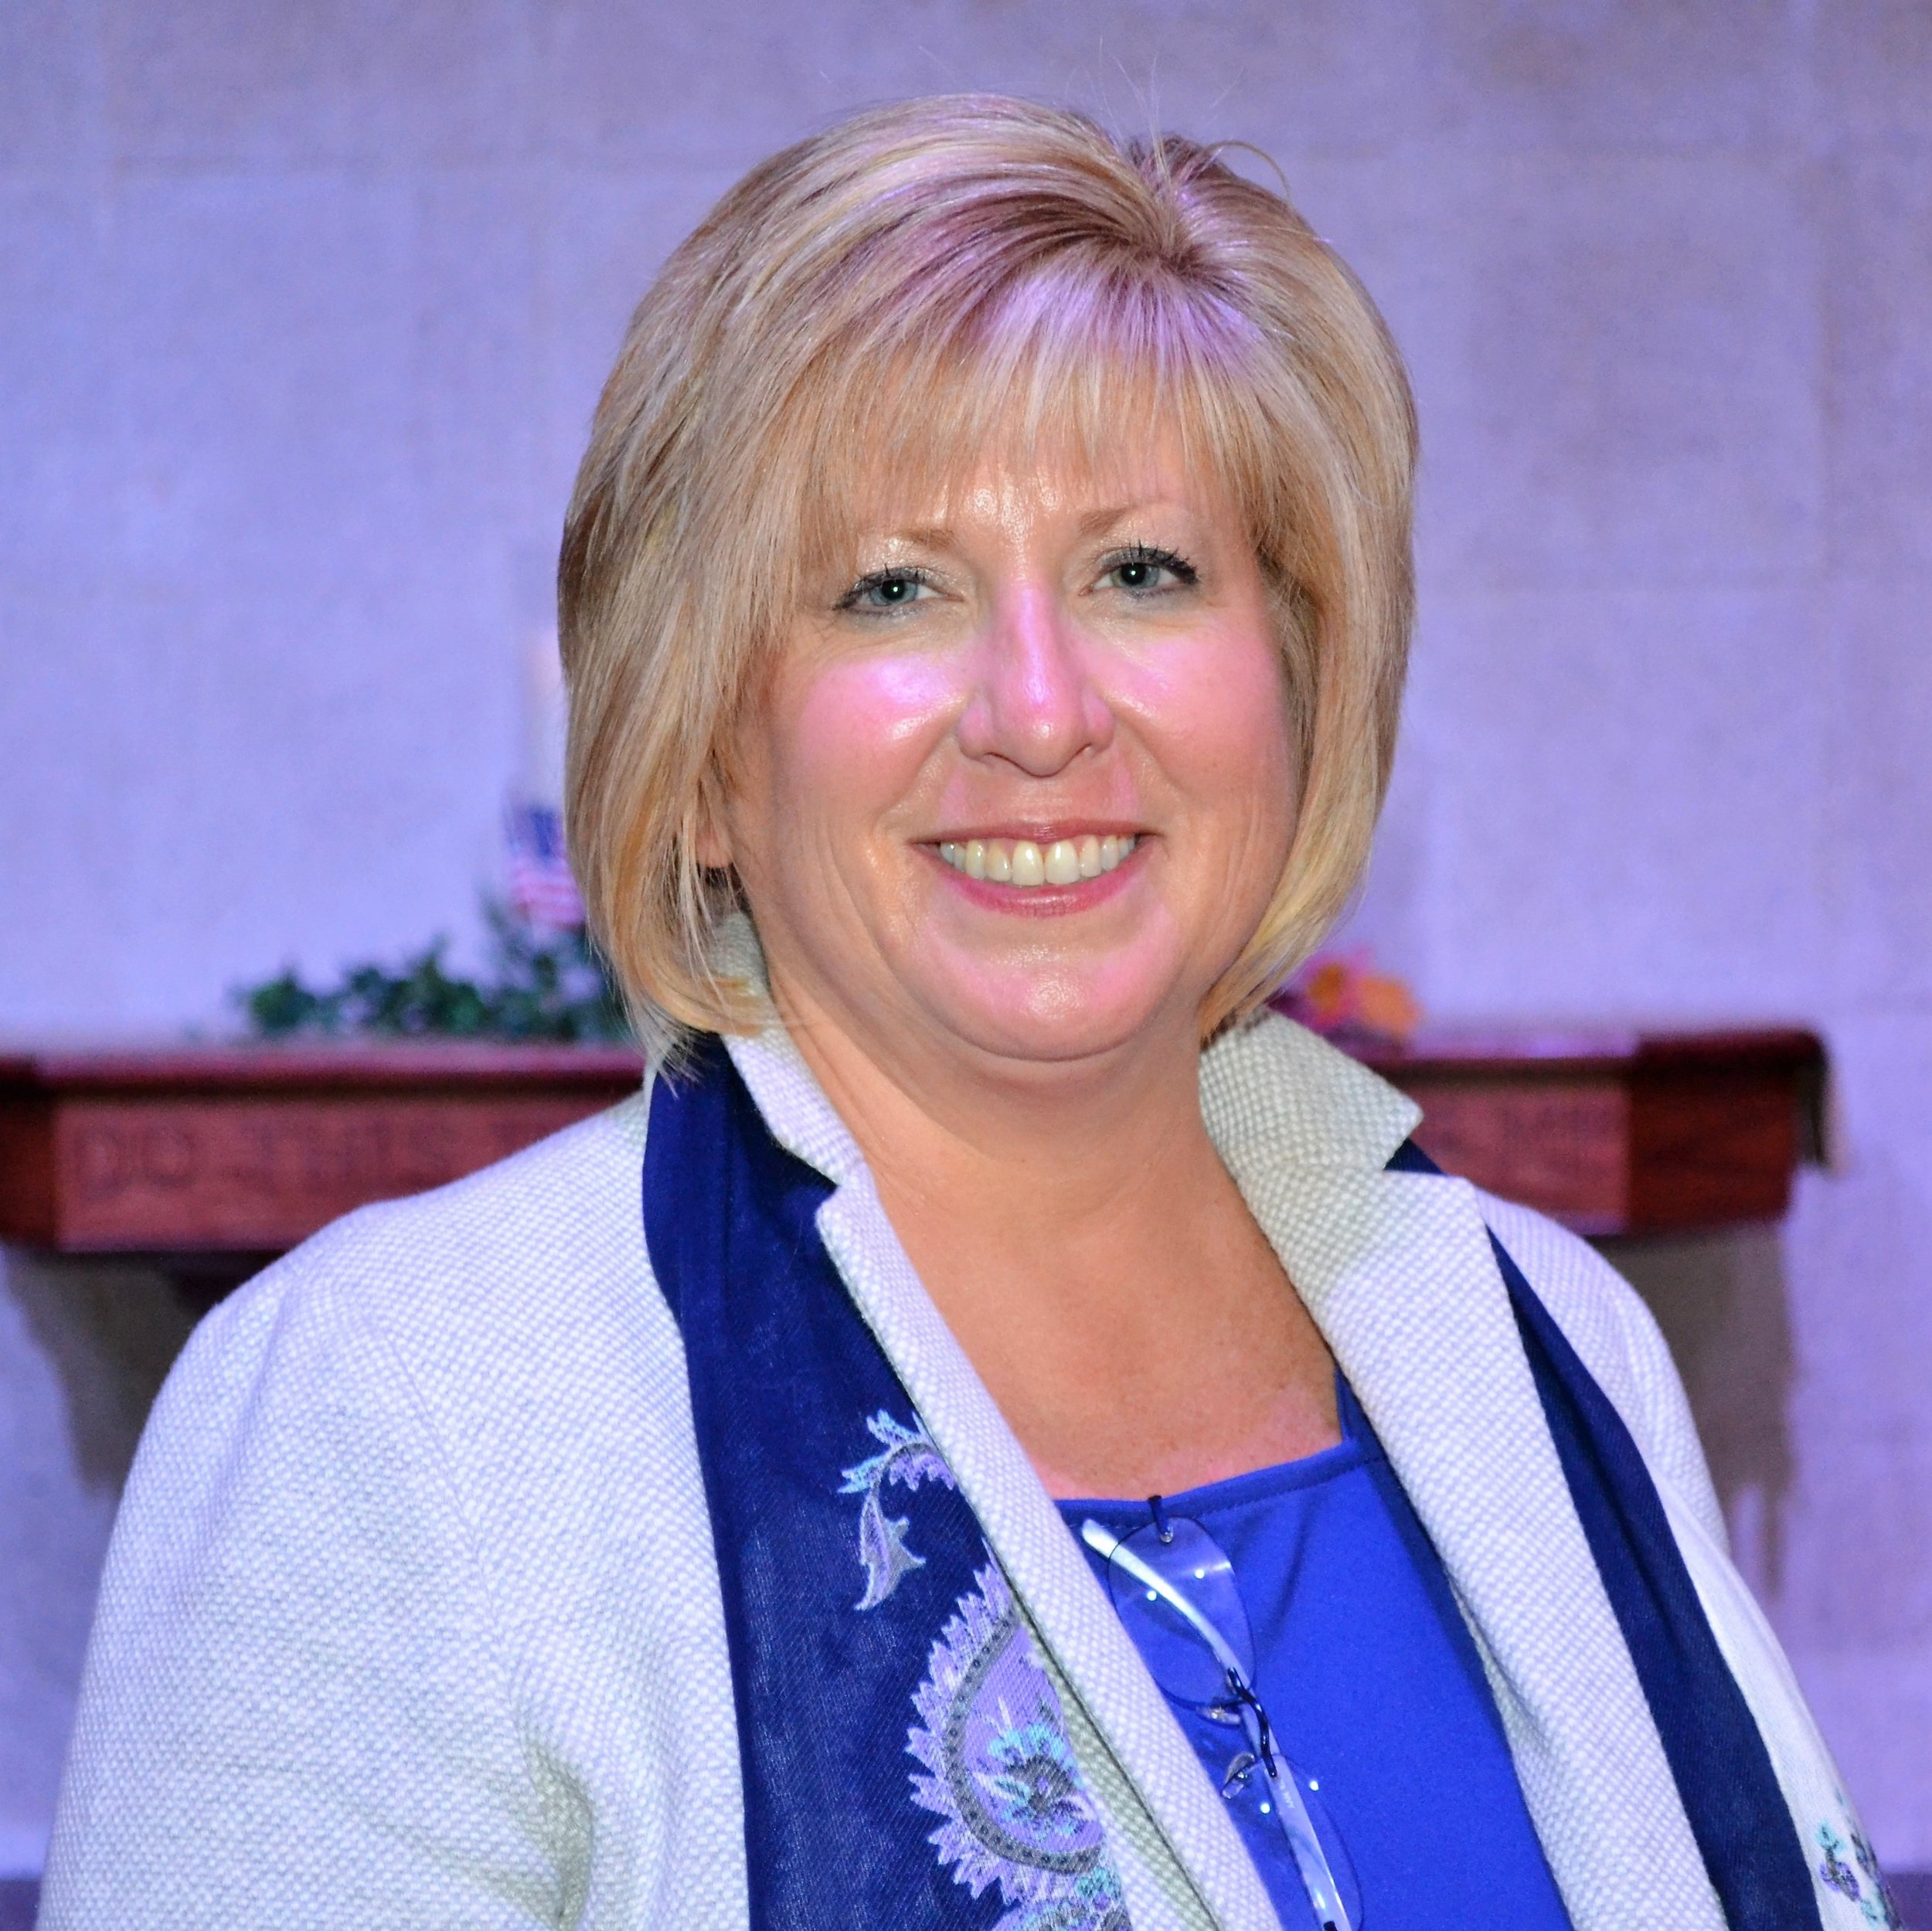 CAROL LEWIS  (SABBATH SCHOOL & SPECIAL PROGRAMS)  Carol has been a member of the Bucks County Church for many years. She is married to her husband Bob, and mother of two amazing children. Carol loves to organize and plan special community programs that share the powerful love of Jesus. Carol encourages all people to know and experience the love of Jesus through Christian Service and Bible study.   email carol